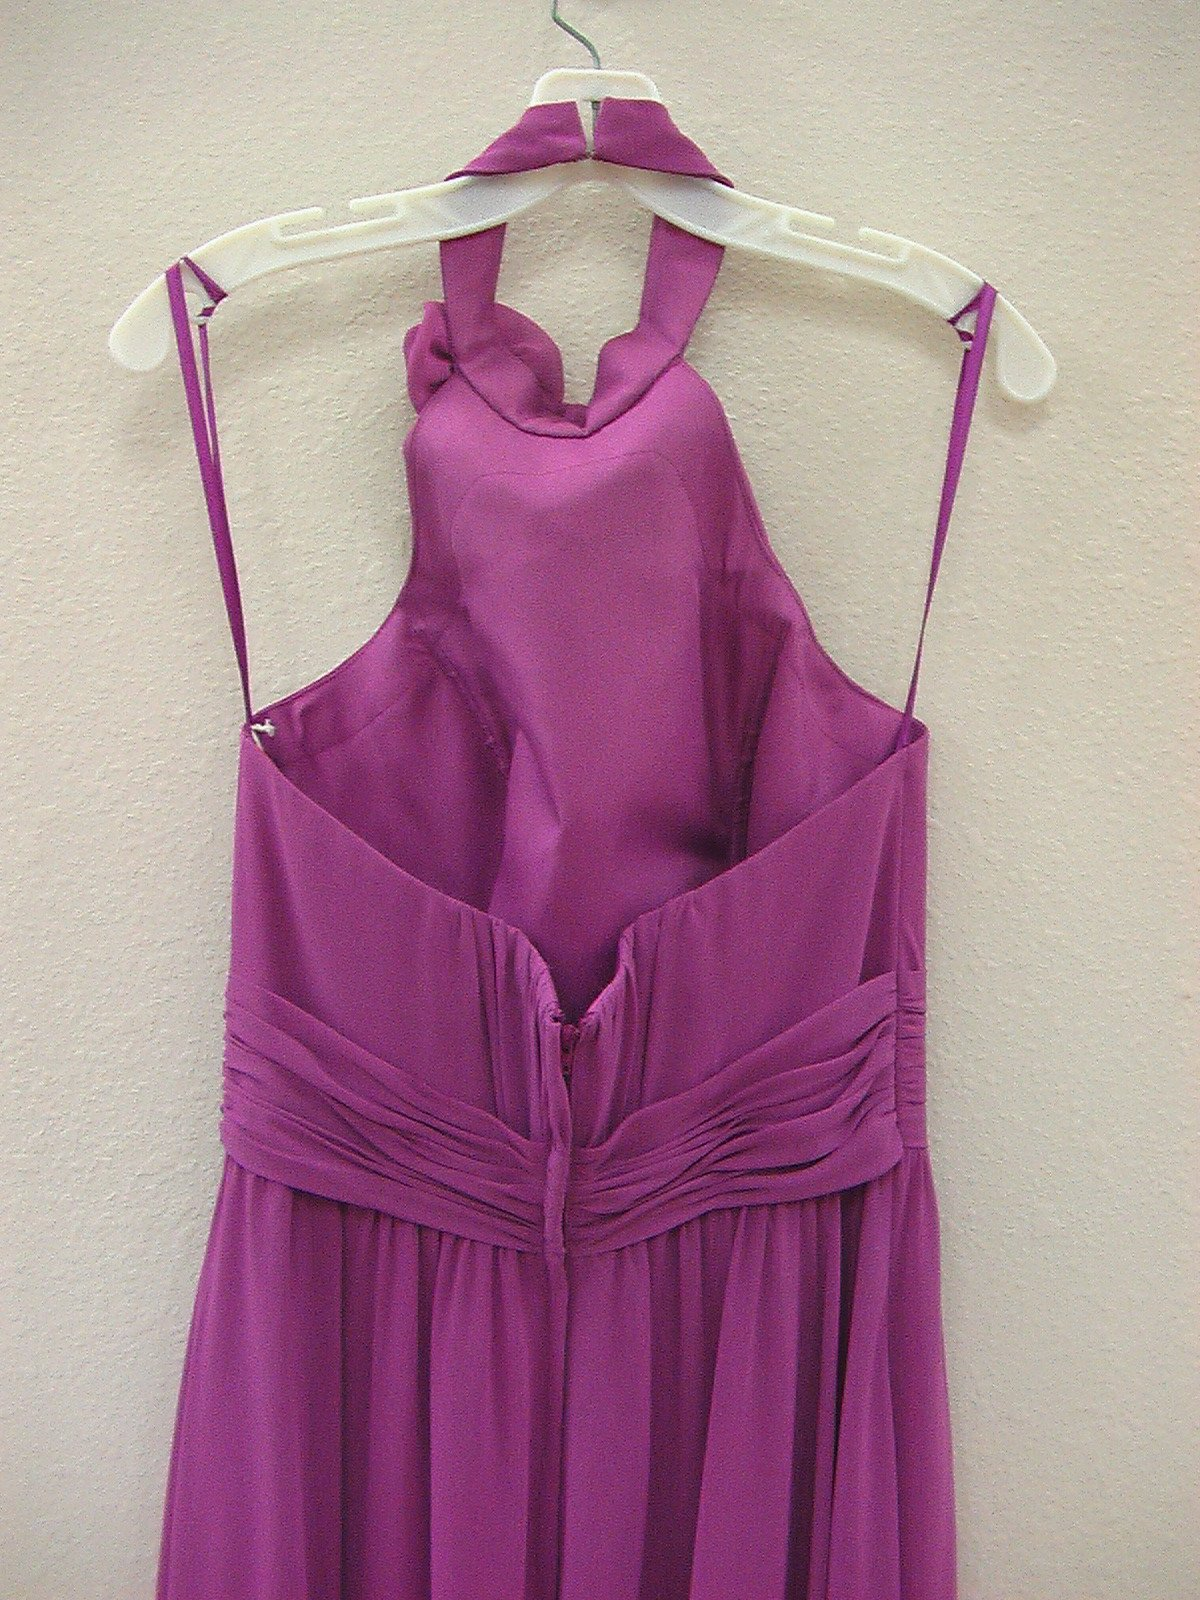 Allure 1261 Wild Berry Size 10 In Stock Bridesmaid Dress - Tom's Bridal